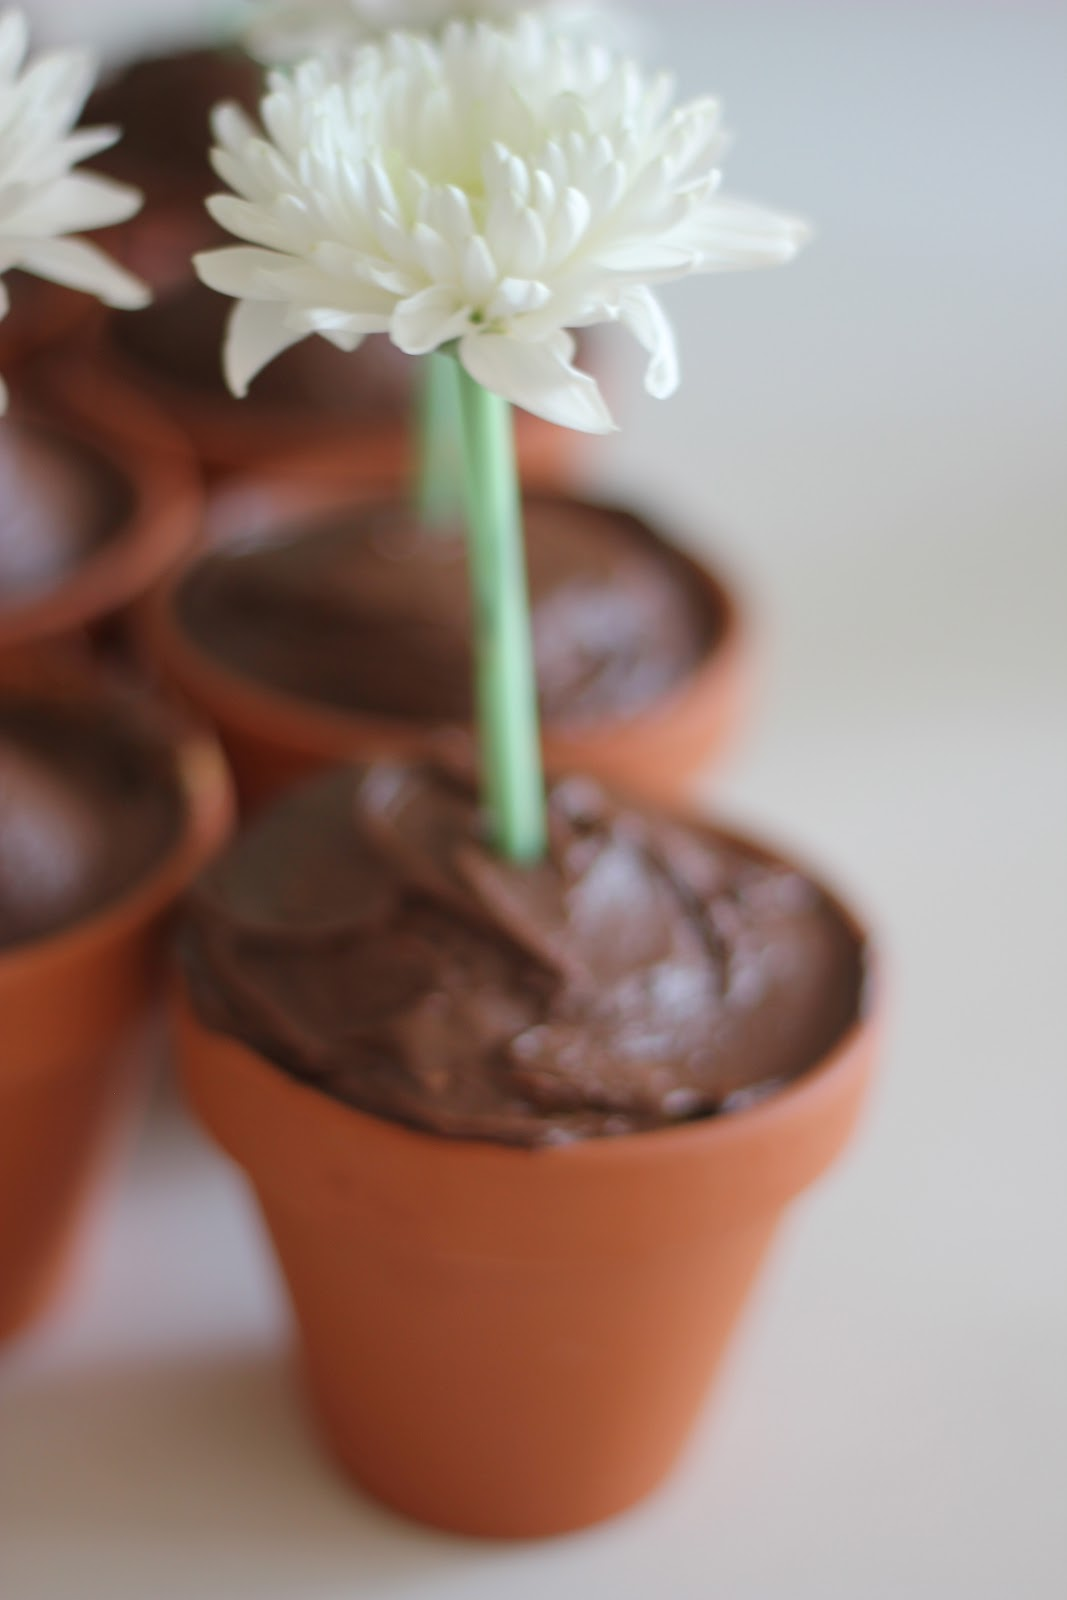 Easy Flower Pot Cupcakes - The Imagination Tree on garden trellis designs, stone gardens designs, box gardens designs, garden planters designs, flower pot designs, dish gardens designs, patio pot designs, flower garden designs, diy garden designs, rock gardens designs, pot people designs, garden gate designs, pinch pot designs, indoor garden designs, potted plant designs, container gardens designs, herb gardens designs, water garden designs, potted vegetable garden designs, mosaic pots designs,